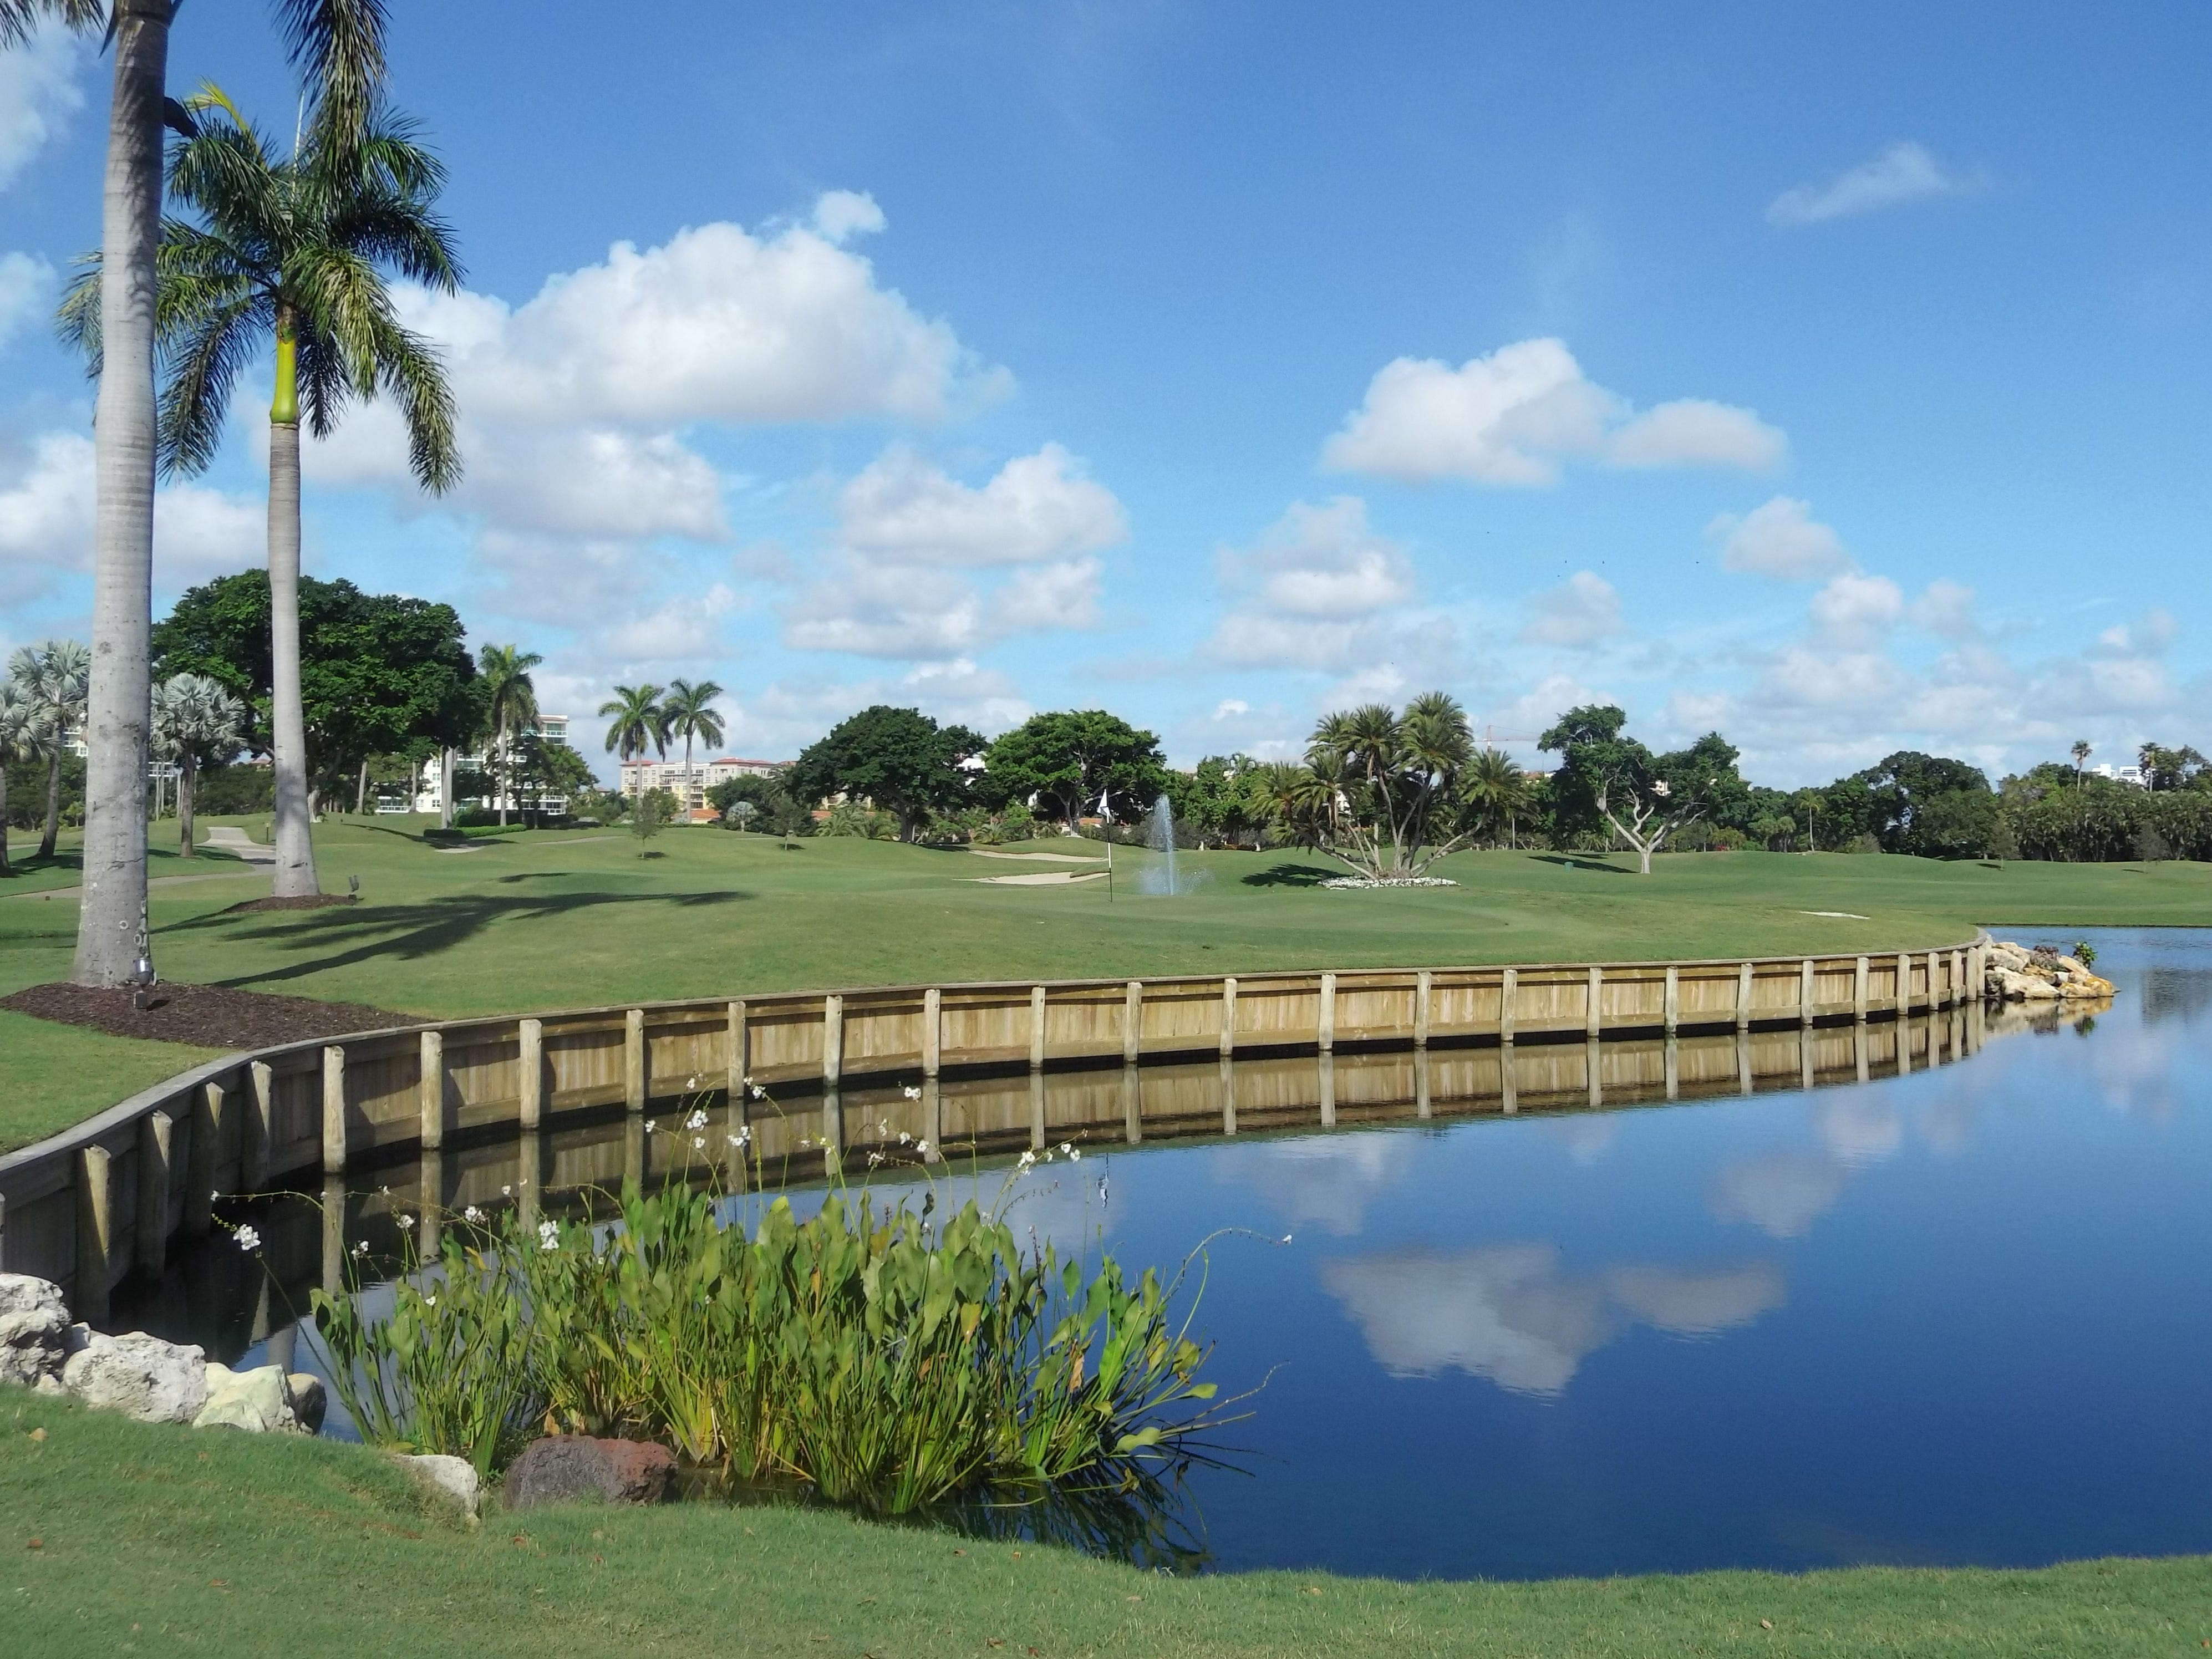 One of the 18-hole golf courses at Boca Raton Resort & Club.